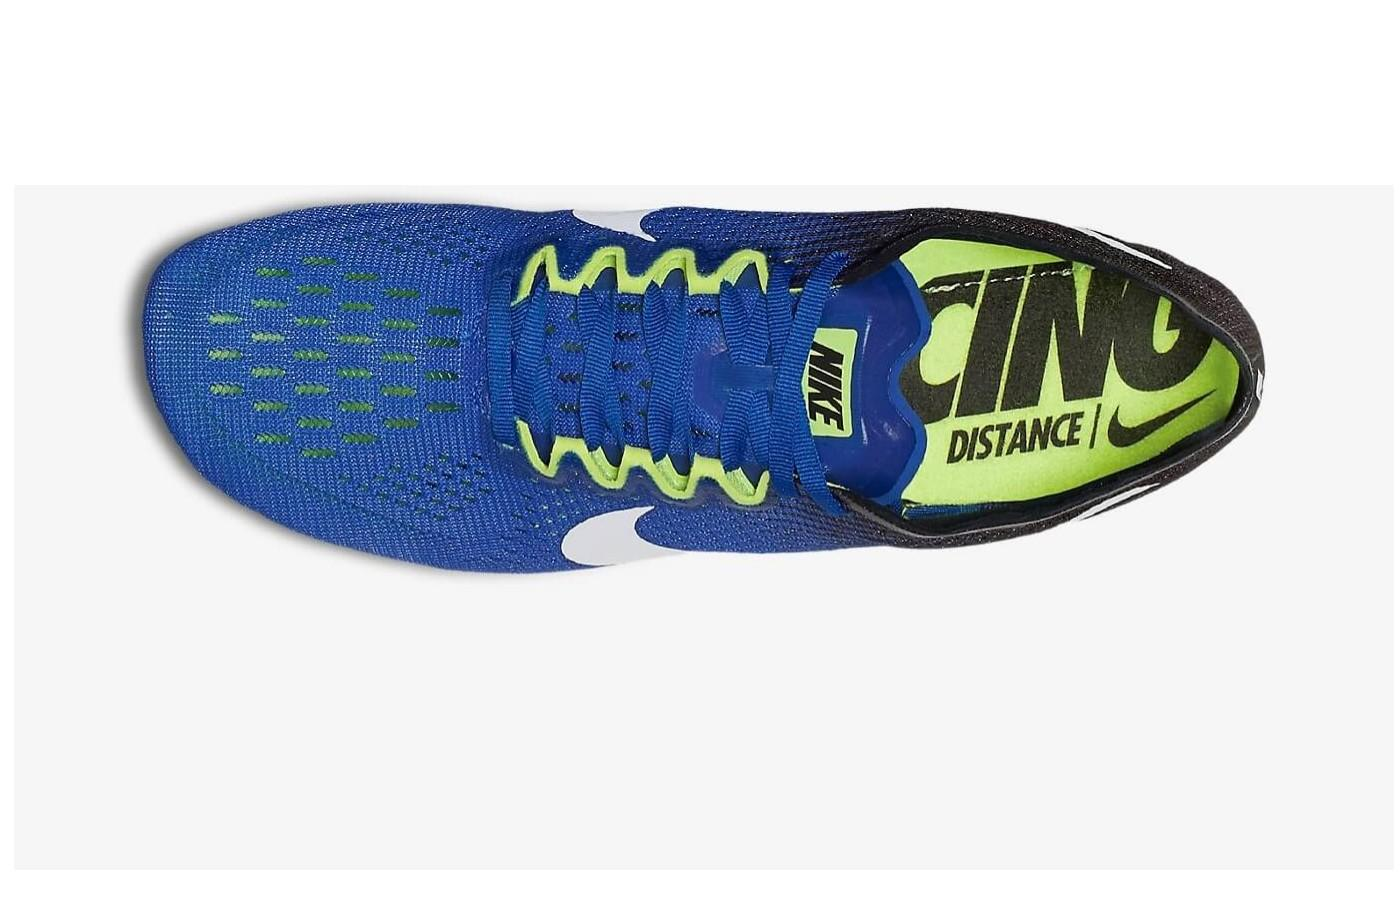 Flymesh material on the upper helps keep these shoes lightweight and breathable.